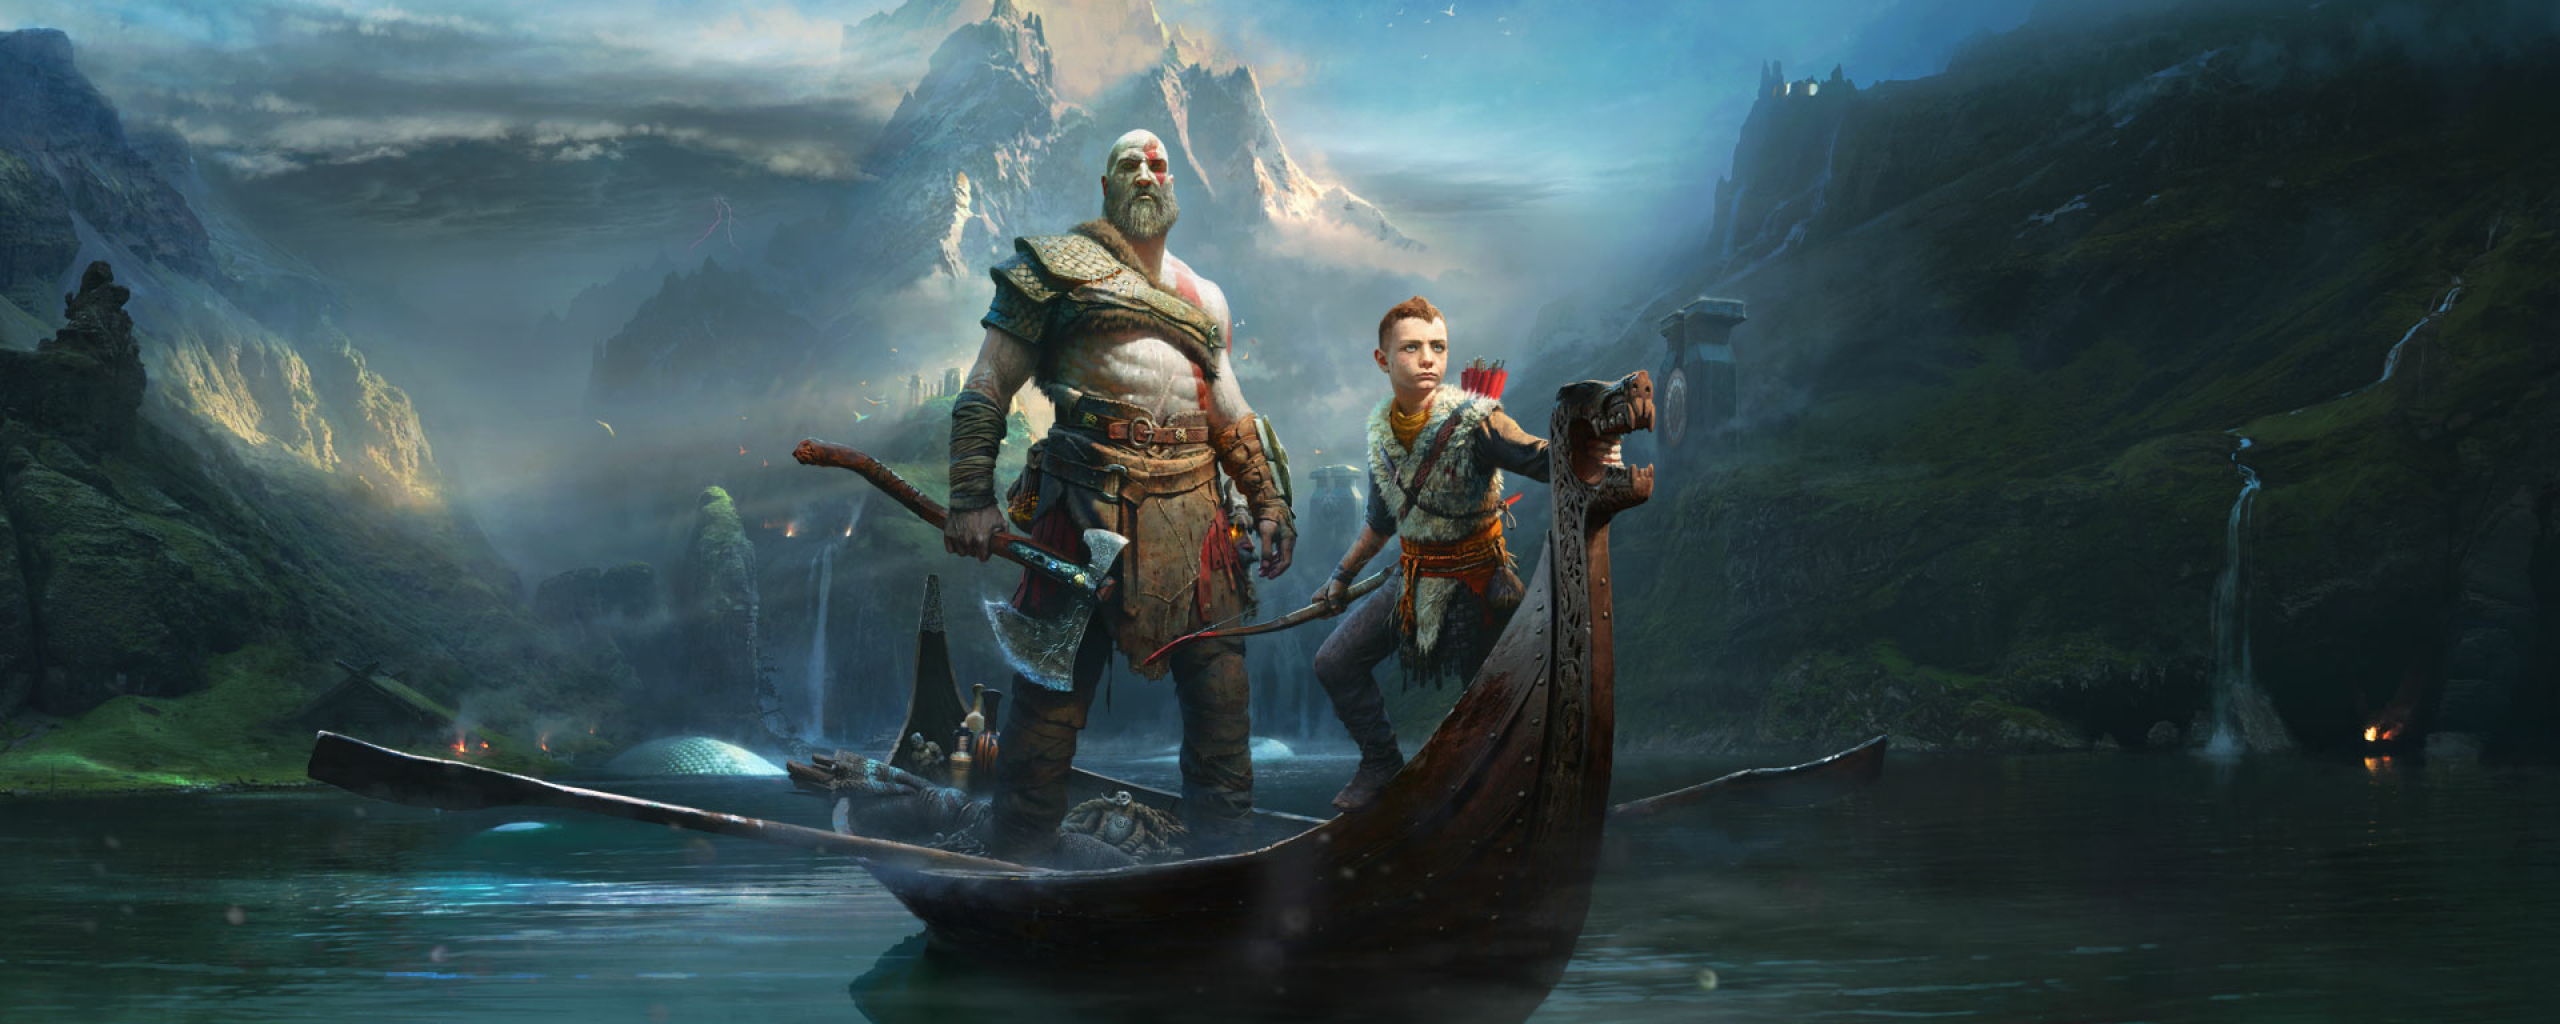 Download Kratos Atreus God Of War 2018 1024x768 Resolution ...